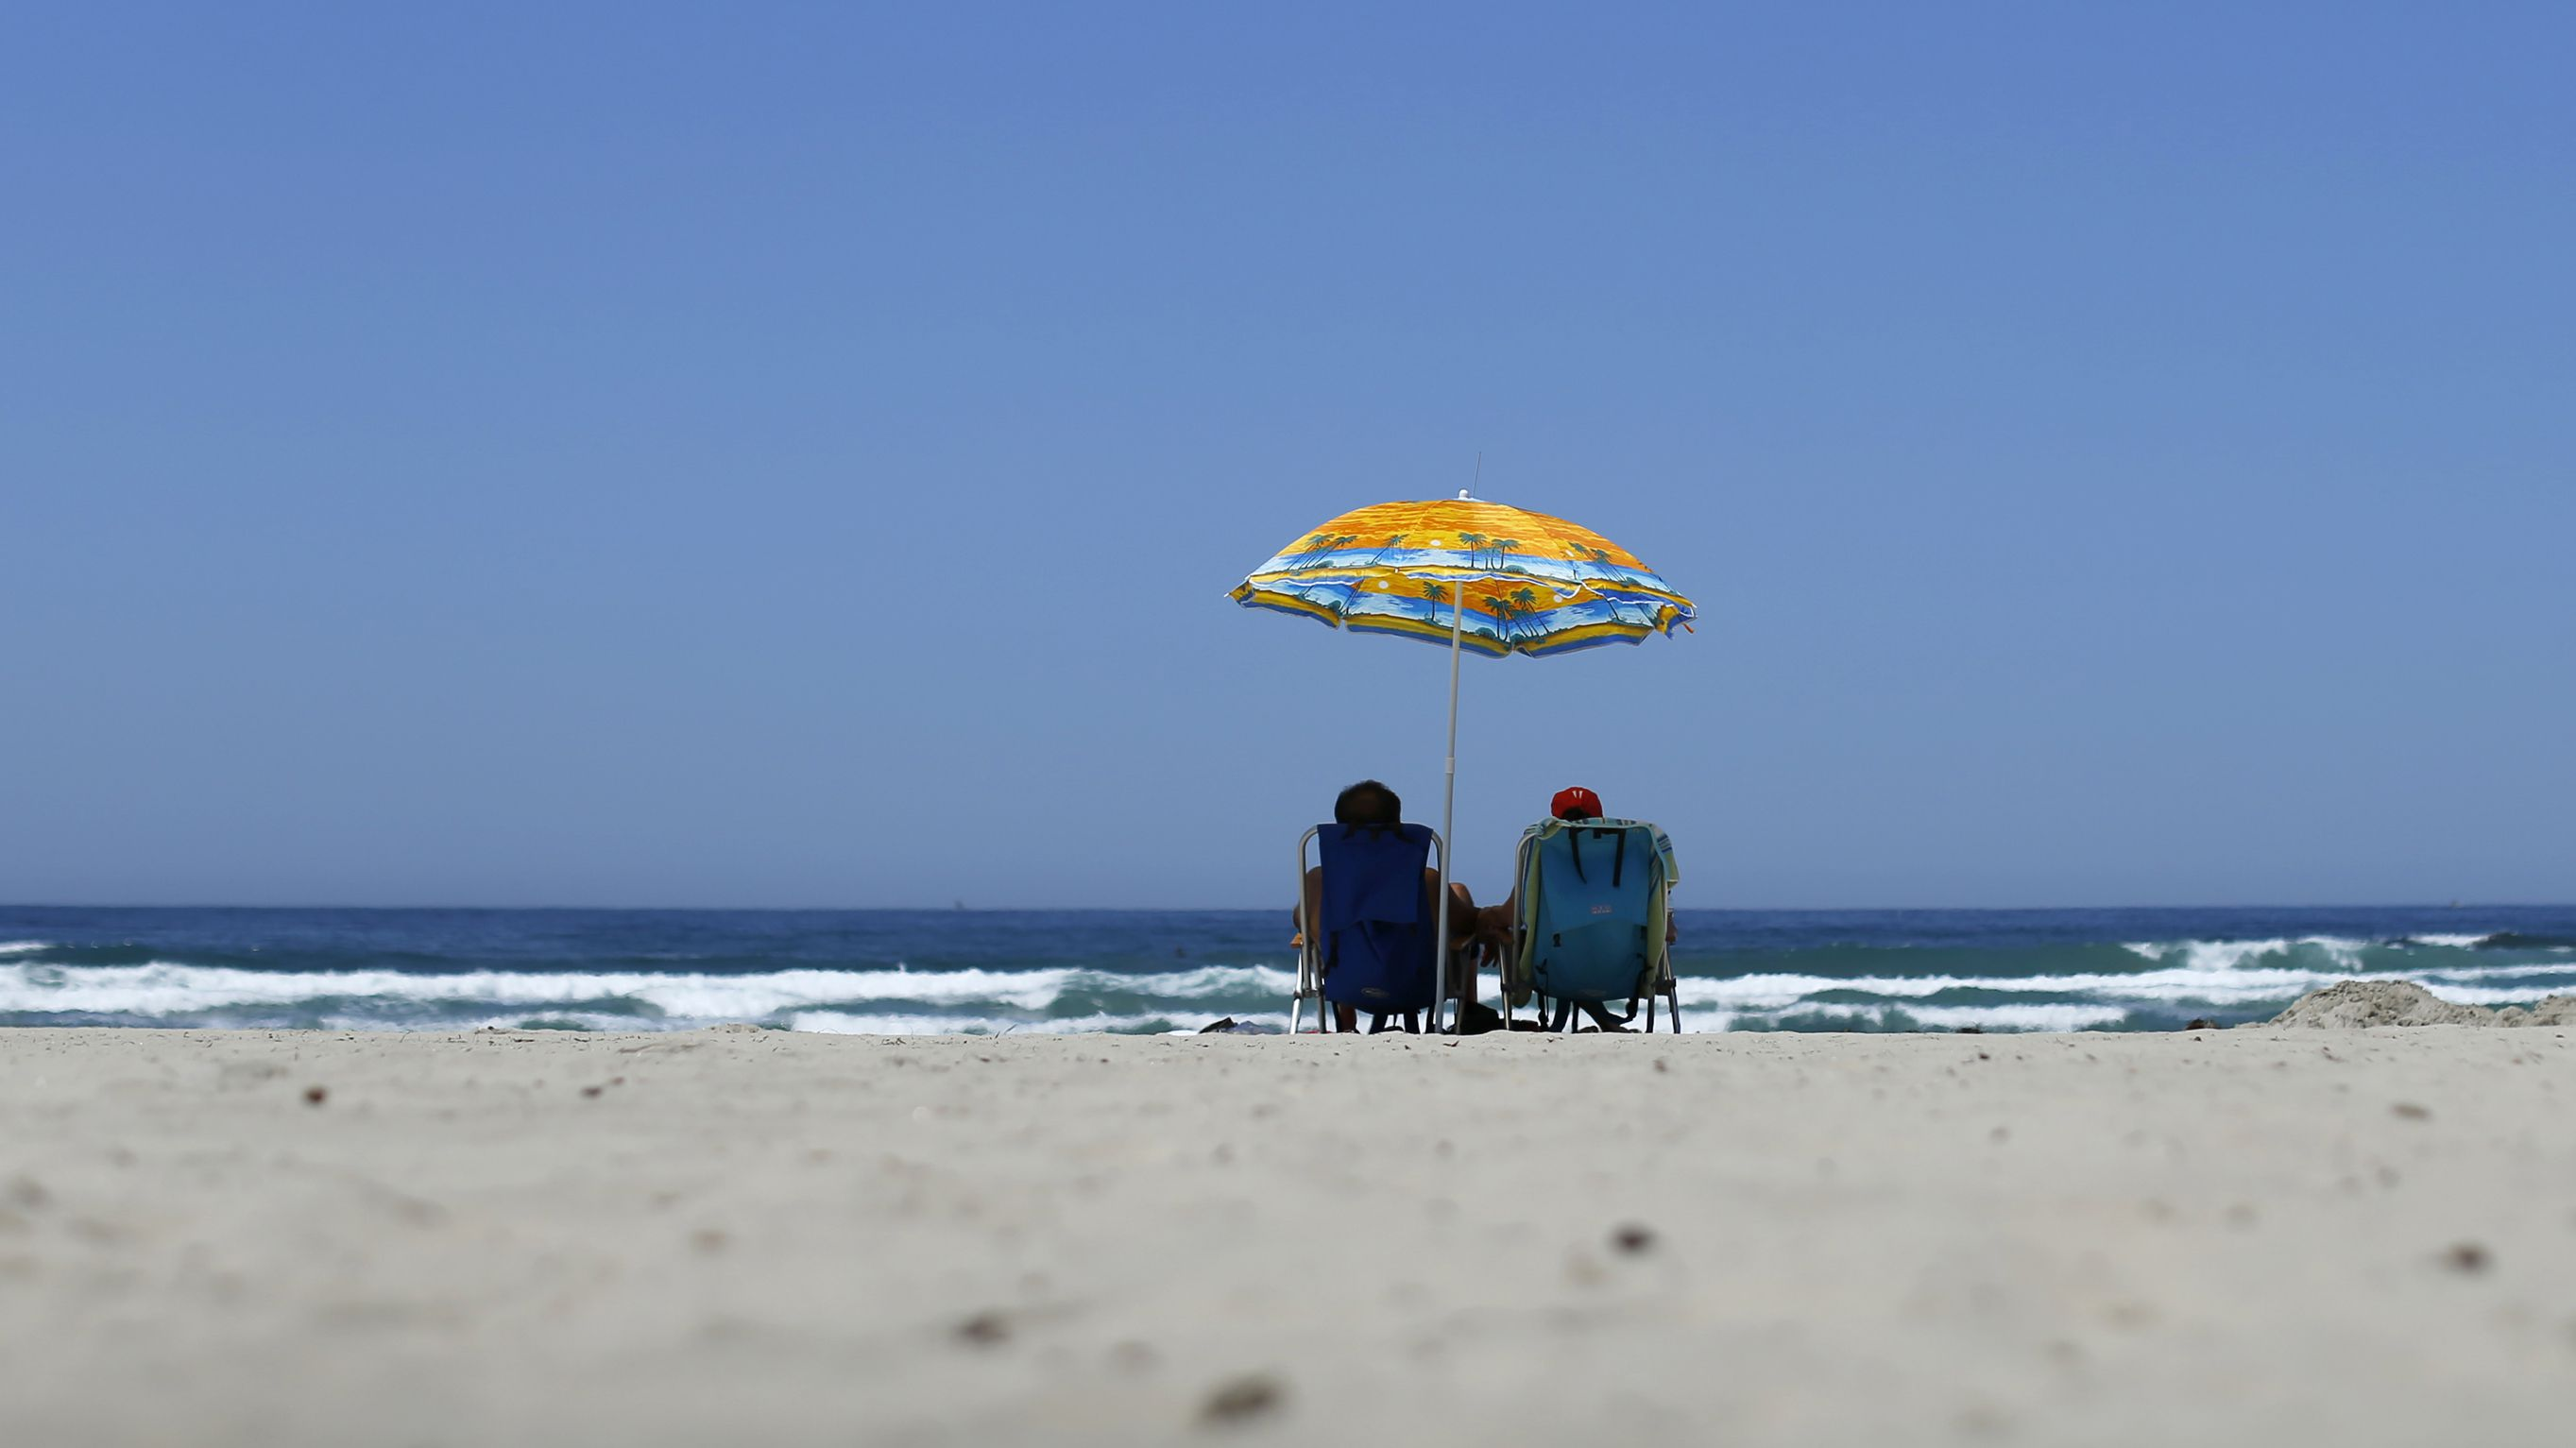 A couple sits under an umbrella for shade from the sun at the beach in La Jolla, California May 12, 2014. A high pressure system is expected to bring record breaking heat to Southern California over the next few days. REUTERS/Mike Blake